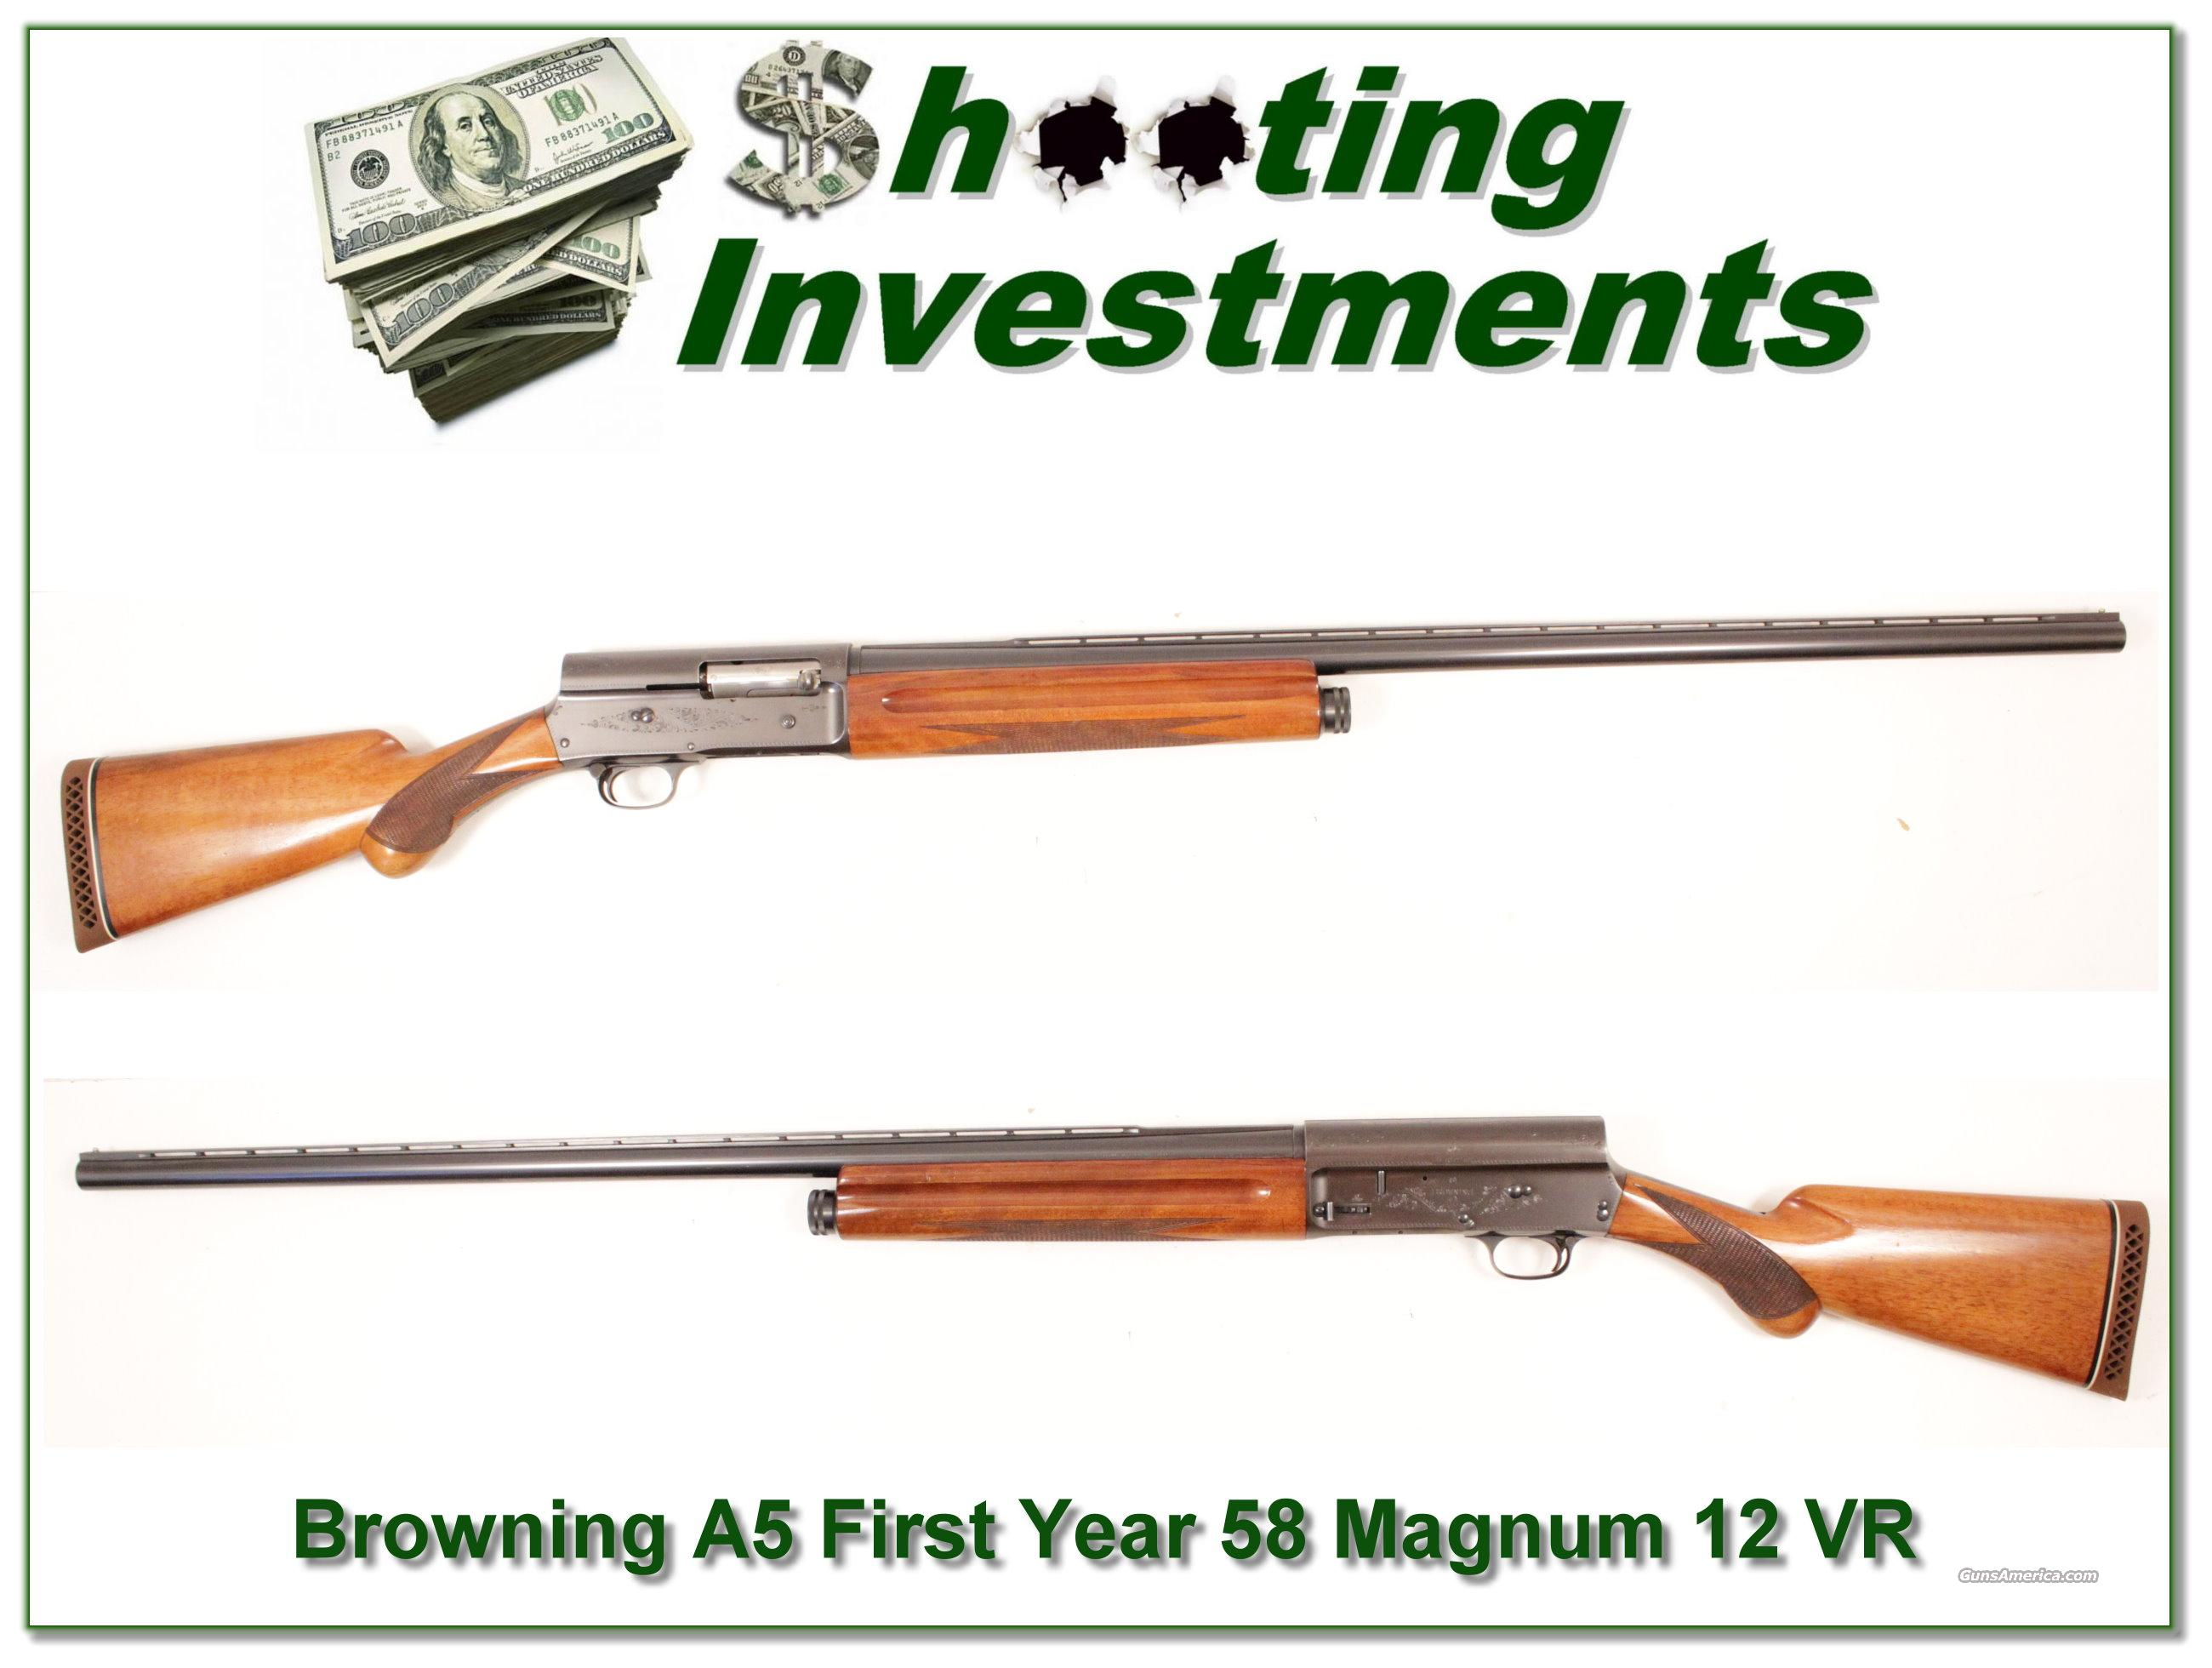 Browning A5 rare FIRST YEAR 58 Belgium Magnum 12!  Guns > Shotguns > Browning Shotguns > Autoloaders > Hunting